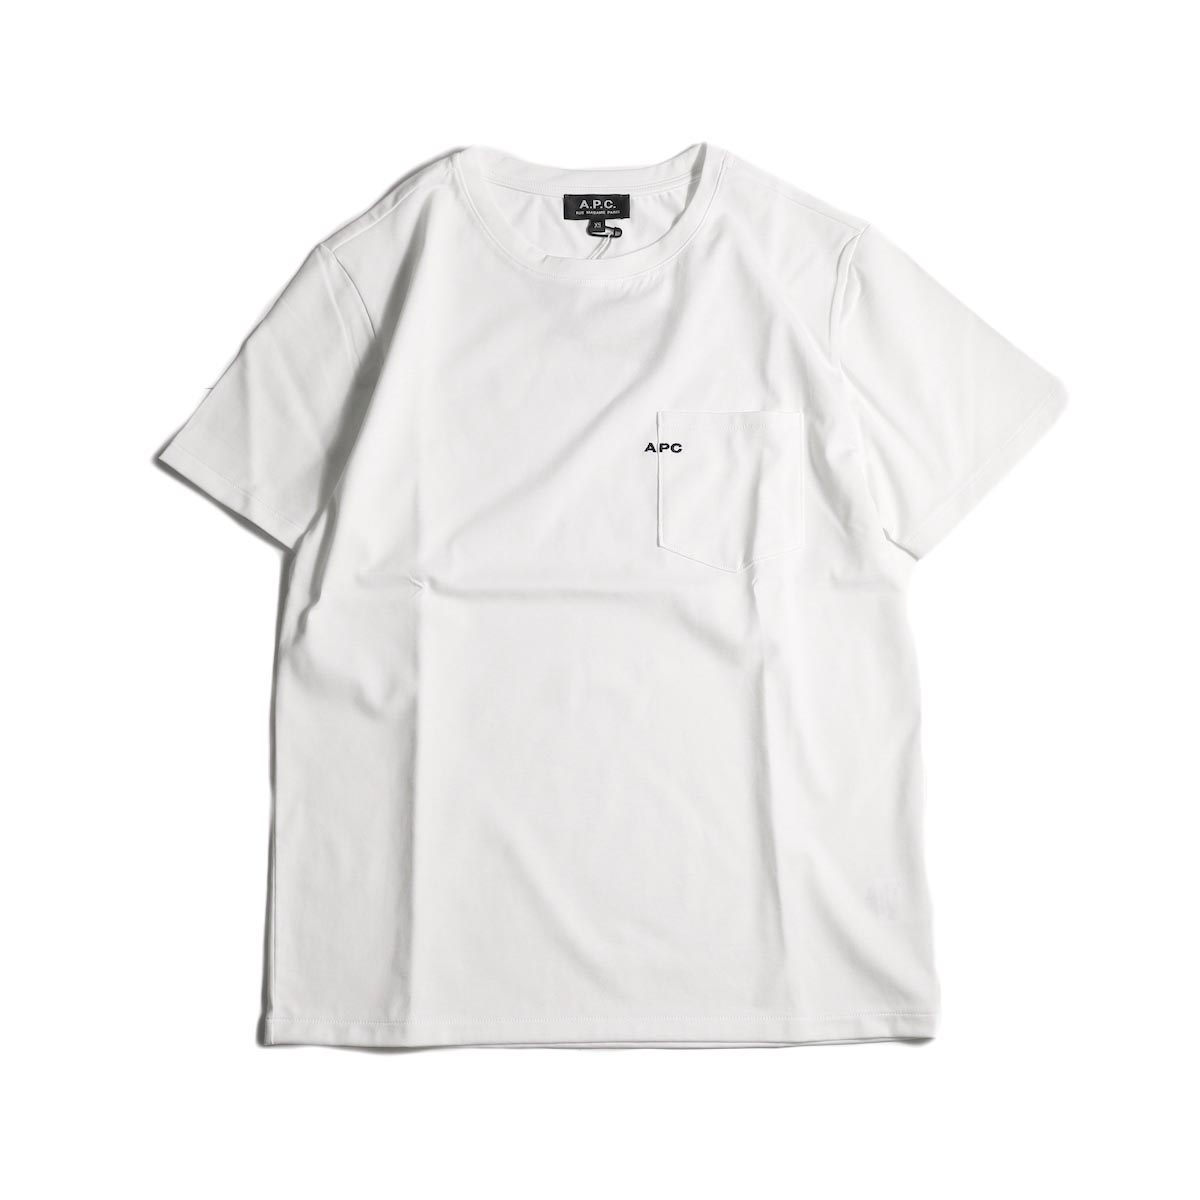 A.P.C. / Crew Neck Emb Pocket Tee -White